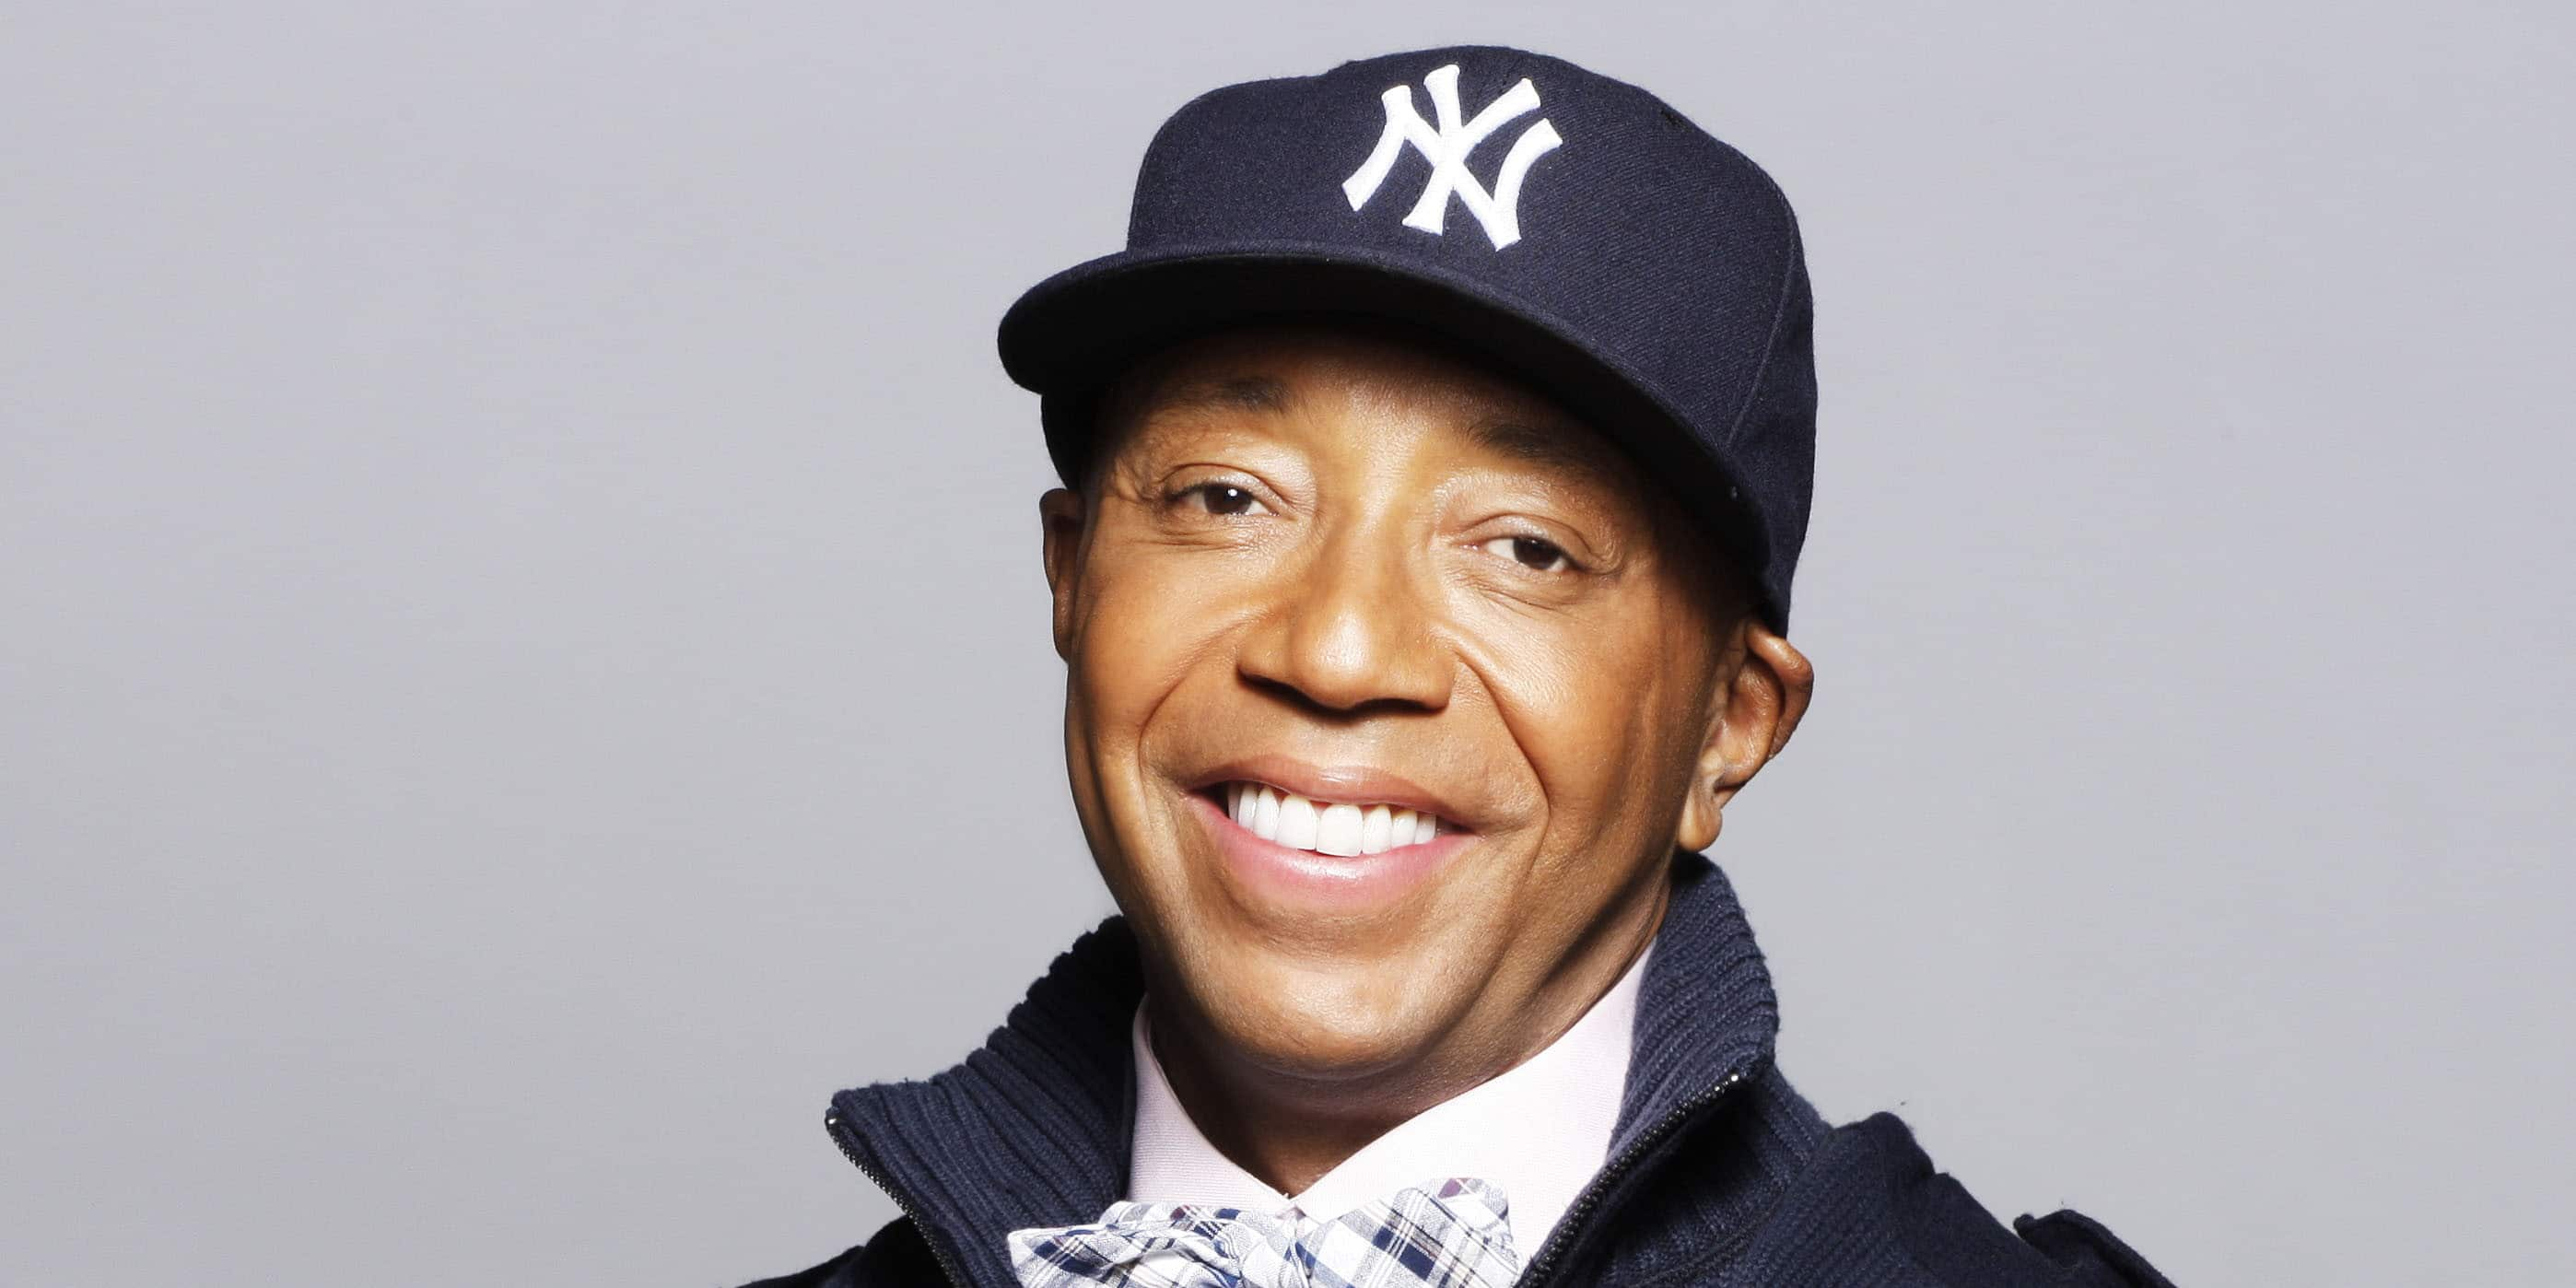 russell simmons net worth 2016